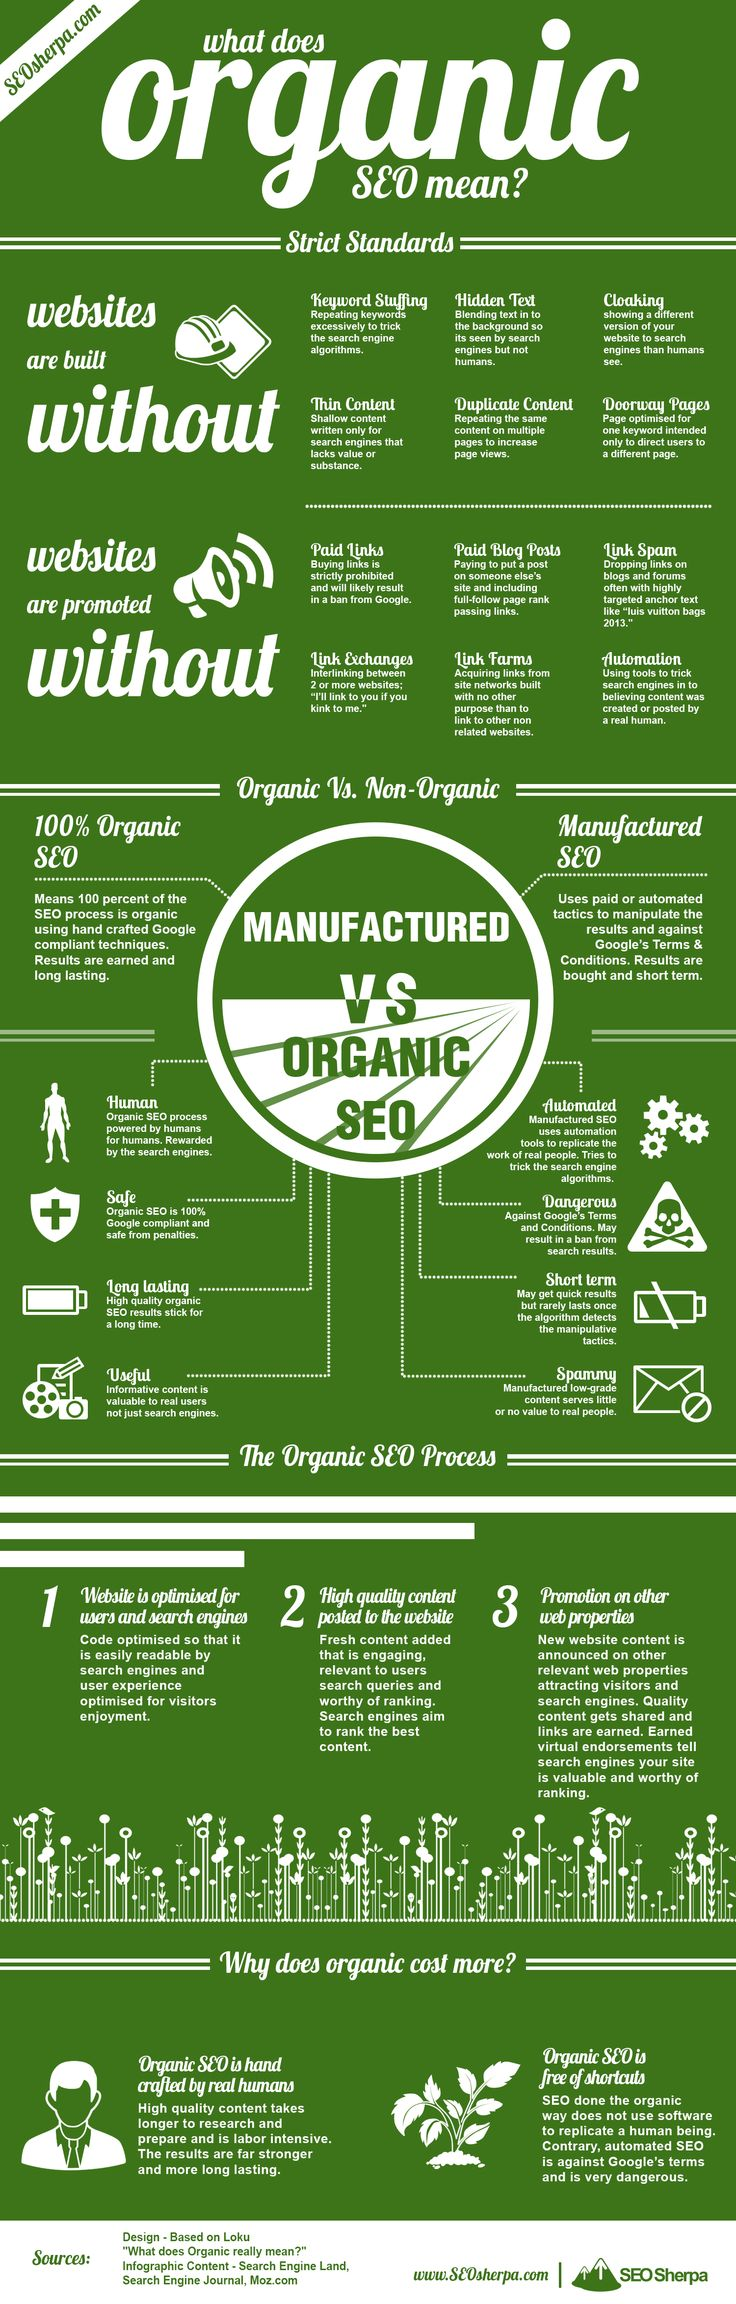 What Does Organic SEO Mean? - This is great summation of Organic SEO that every business owner should understand.